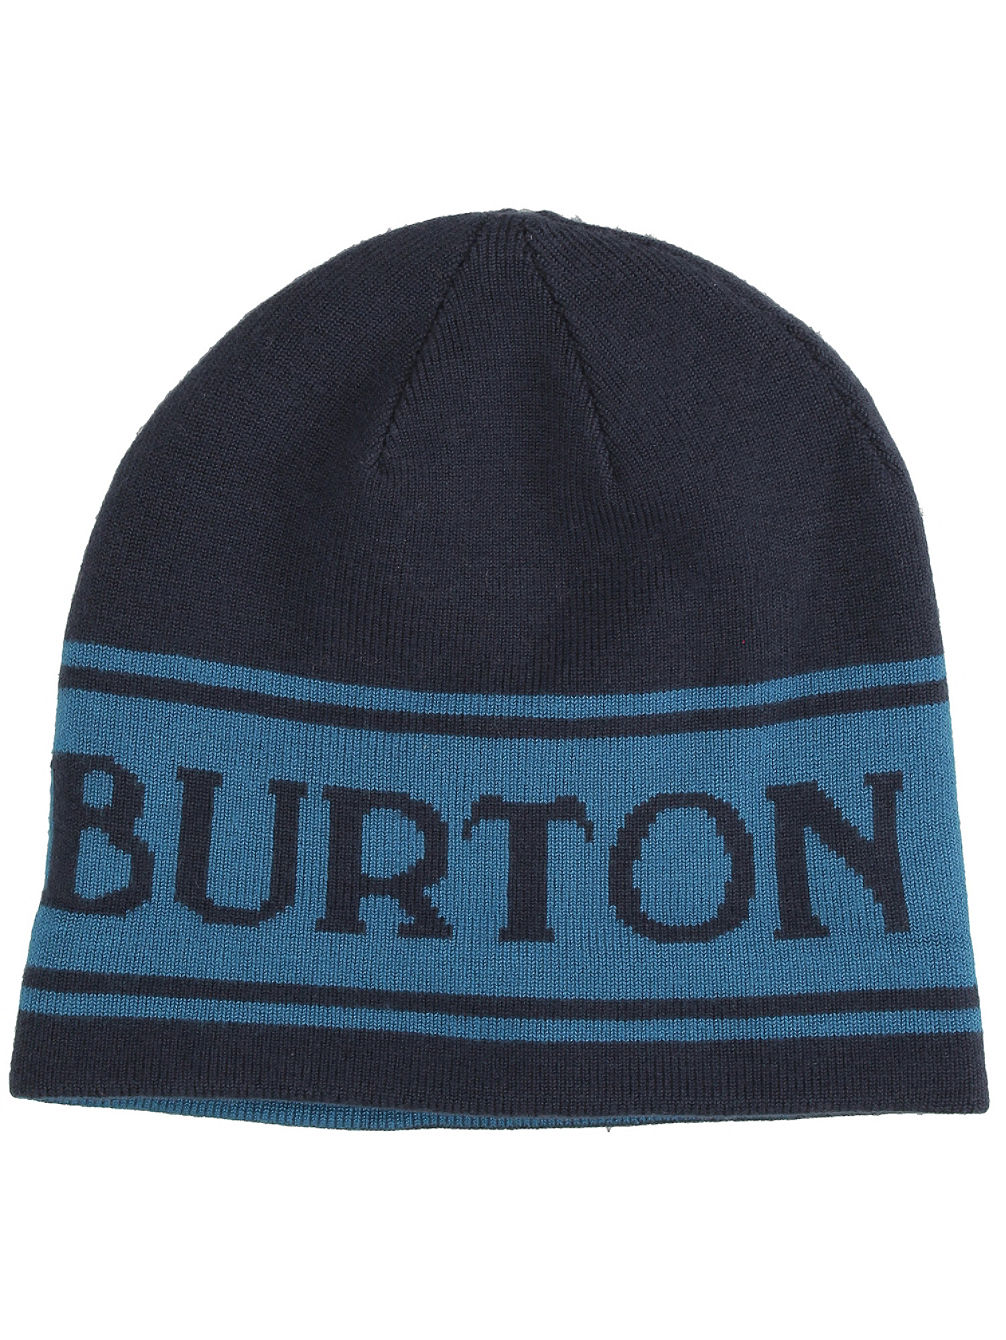 a233642f430 Buy Burton Billboard Beanie Youth online at blue-tomato.com